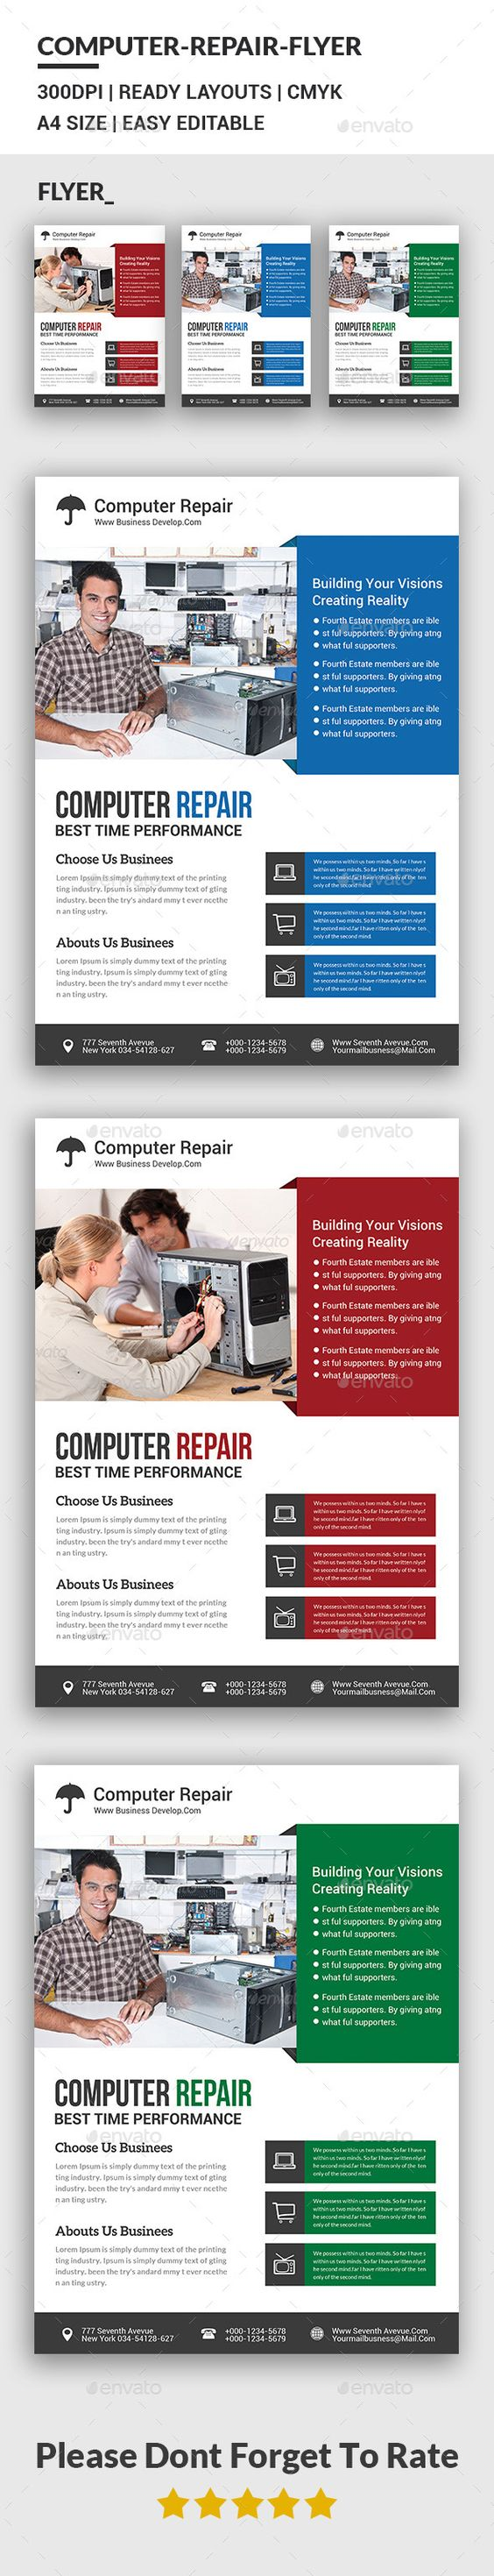 Computer Repair Flyer Template | Flyer template, Computers and Flyers